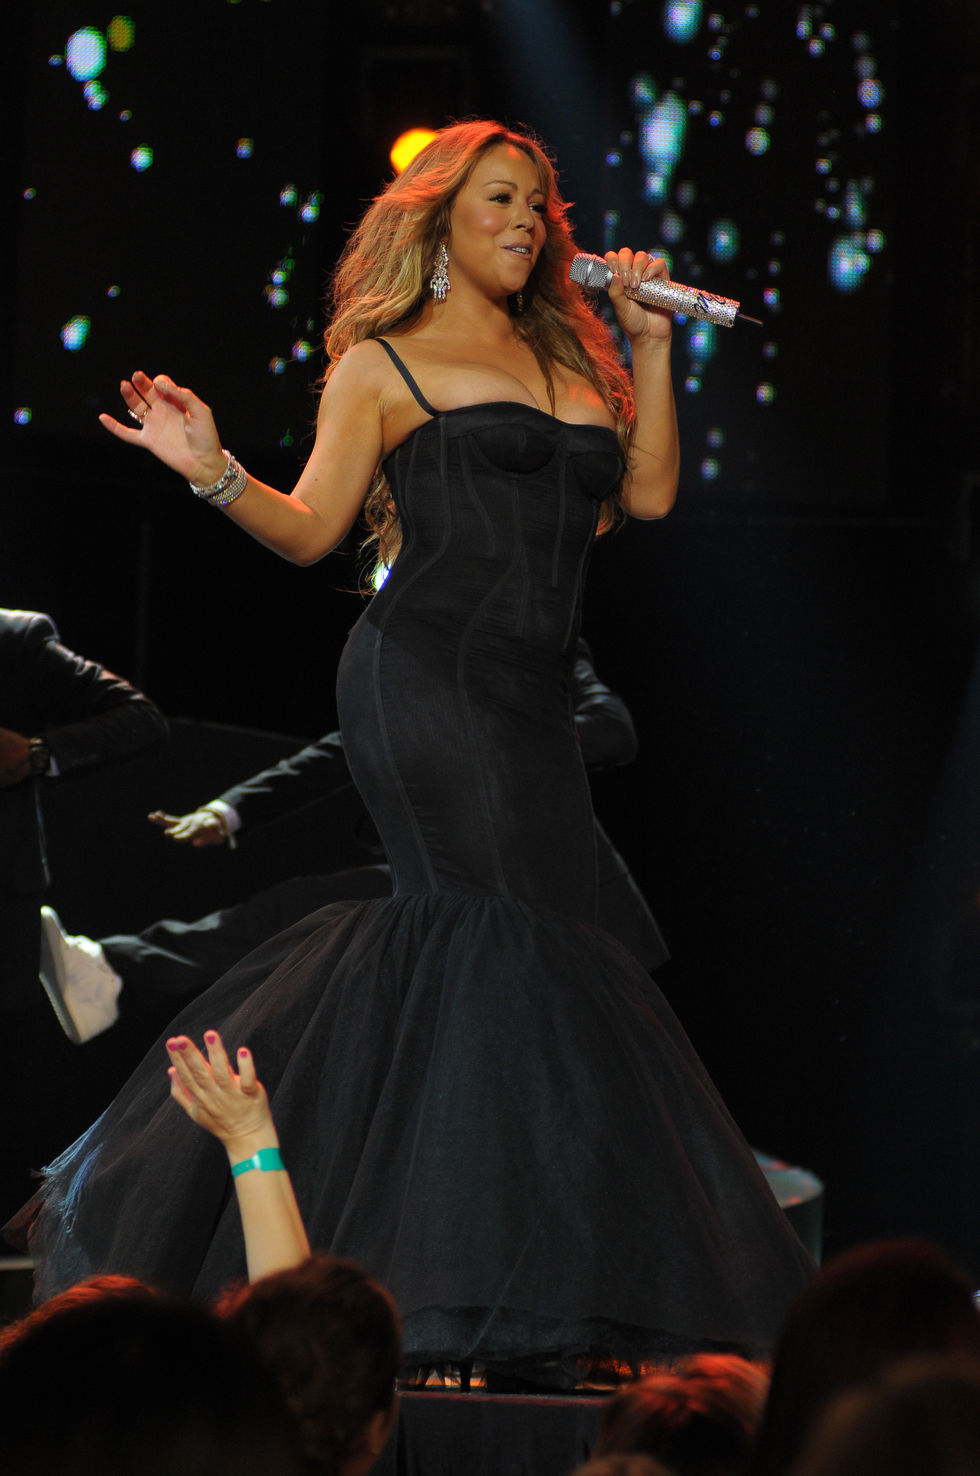 mariah-carey-performs-at-oi-fashion-rocks-in-rio-de-janeiro-01